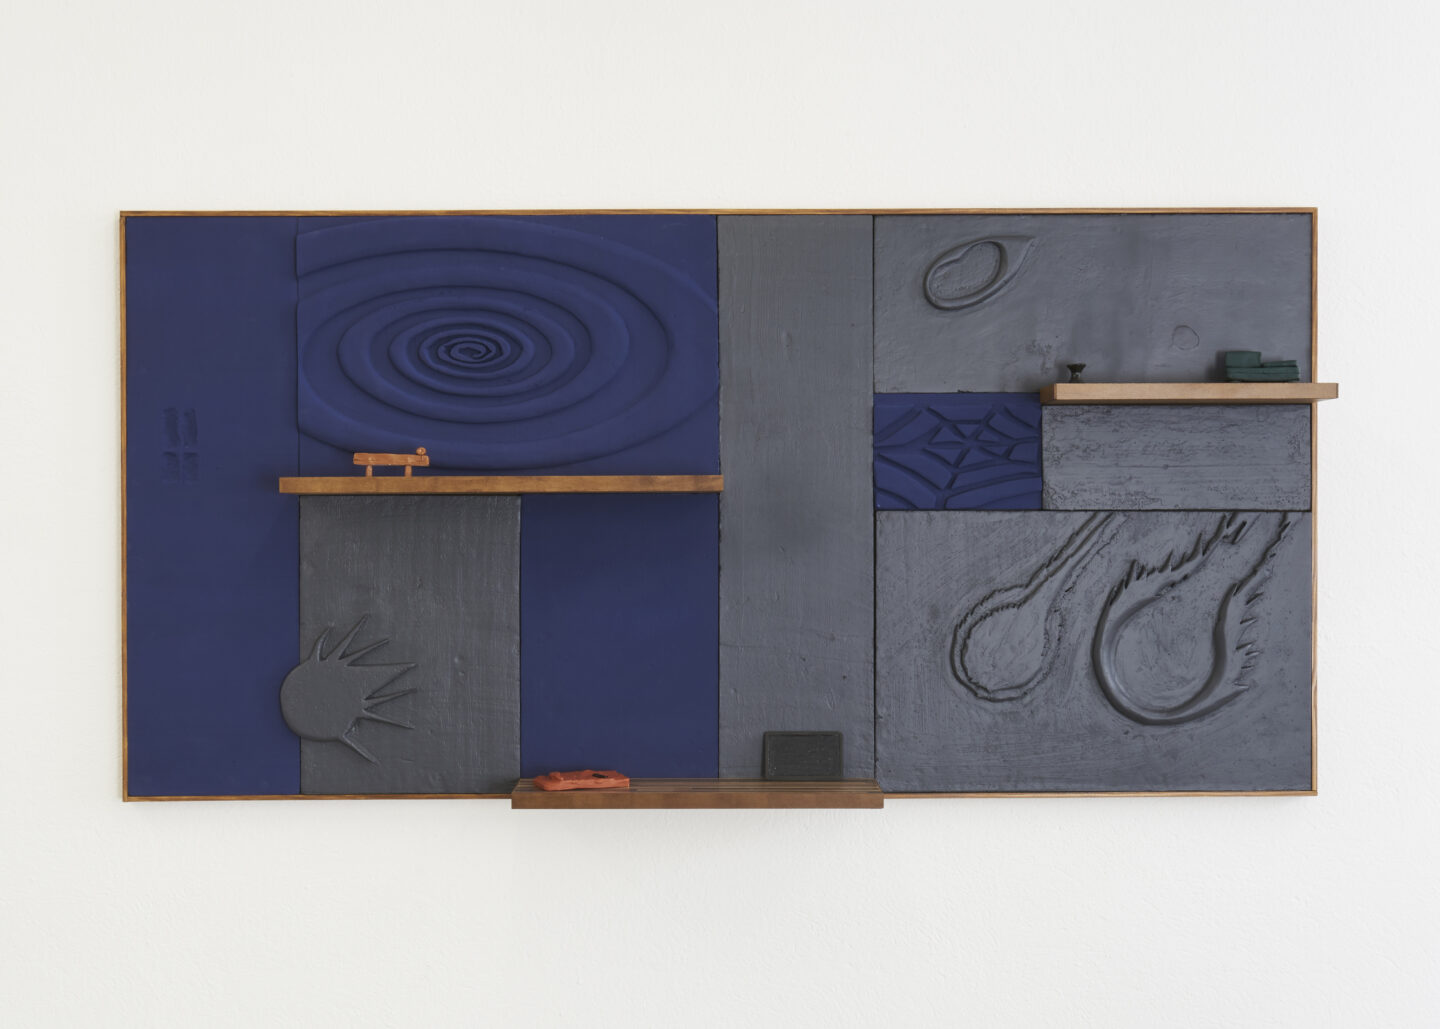 Exhibition View Groupshow «Either it is raining or it is not (at a particular space and time) ; view on Loucia Carlier» at WallRiss, Fribourg, 2019 / Photo: Guillaume Baeriswyl